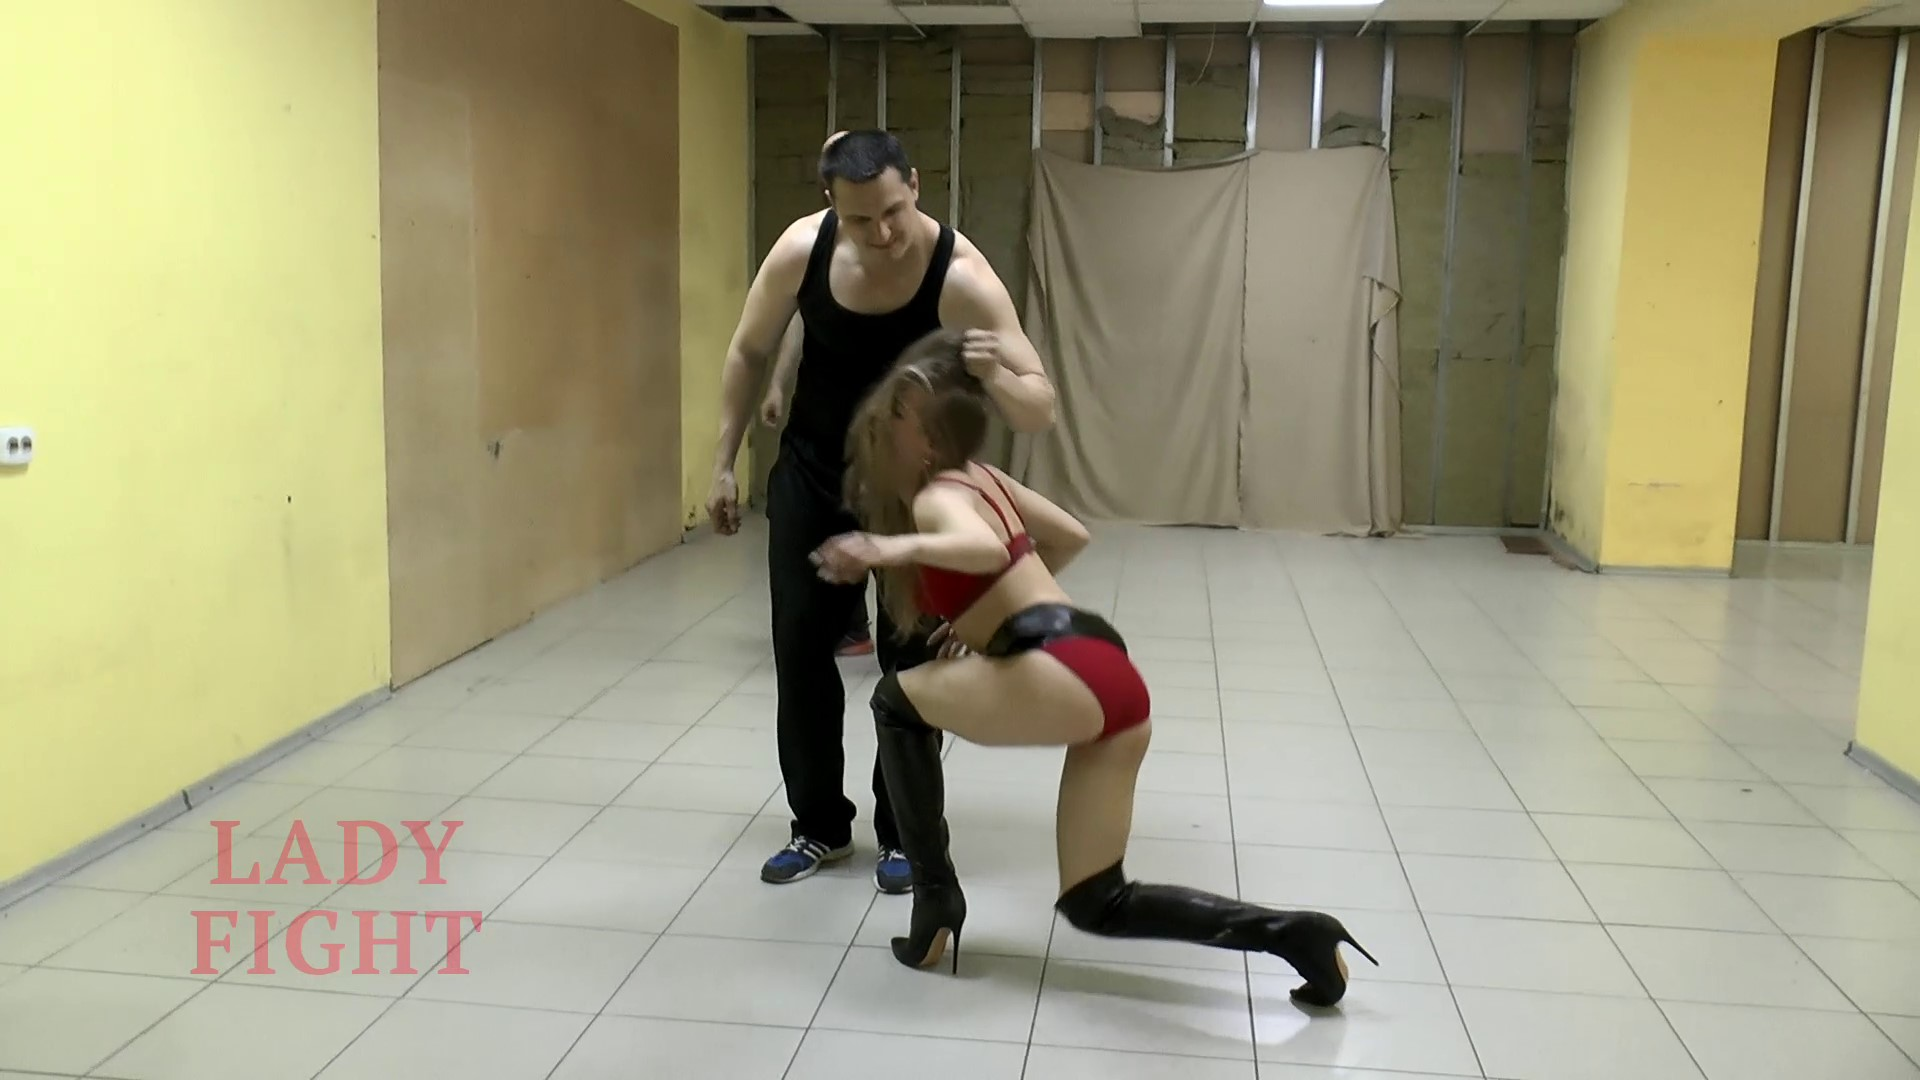 LADYFIGHT-Deadly-Wrestling-For-Lora-94